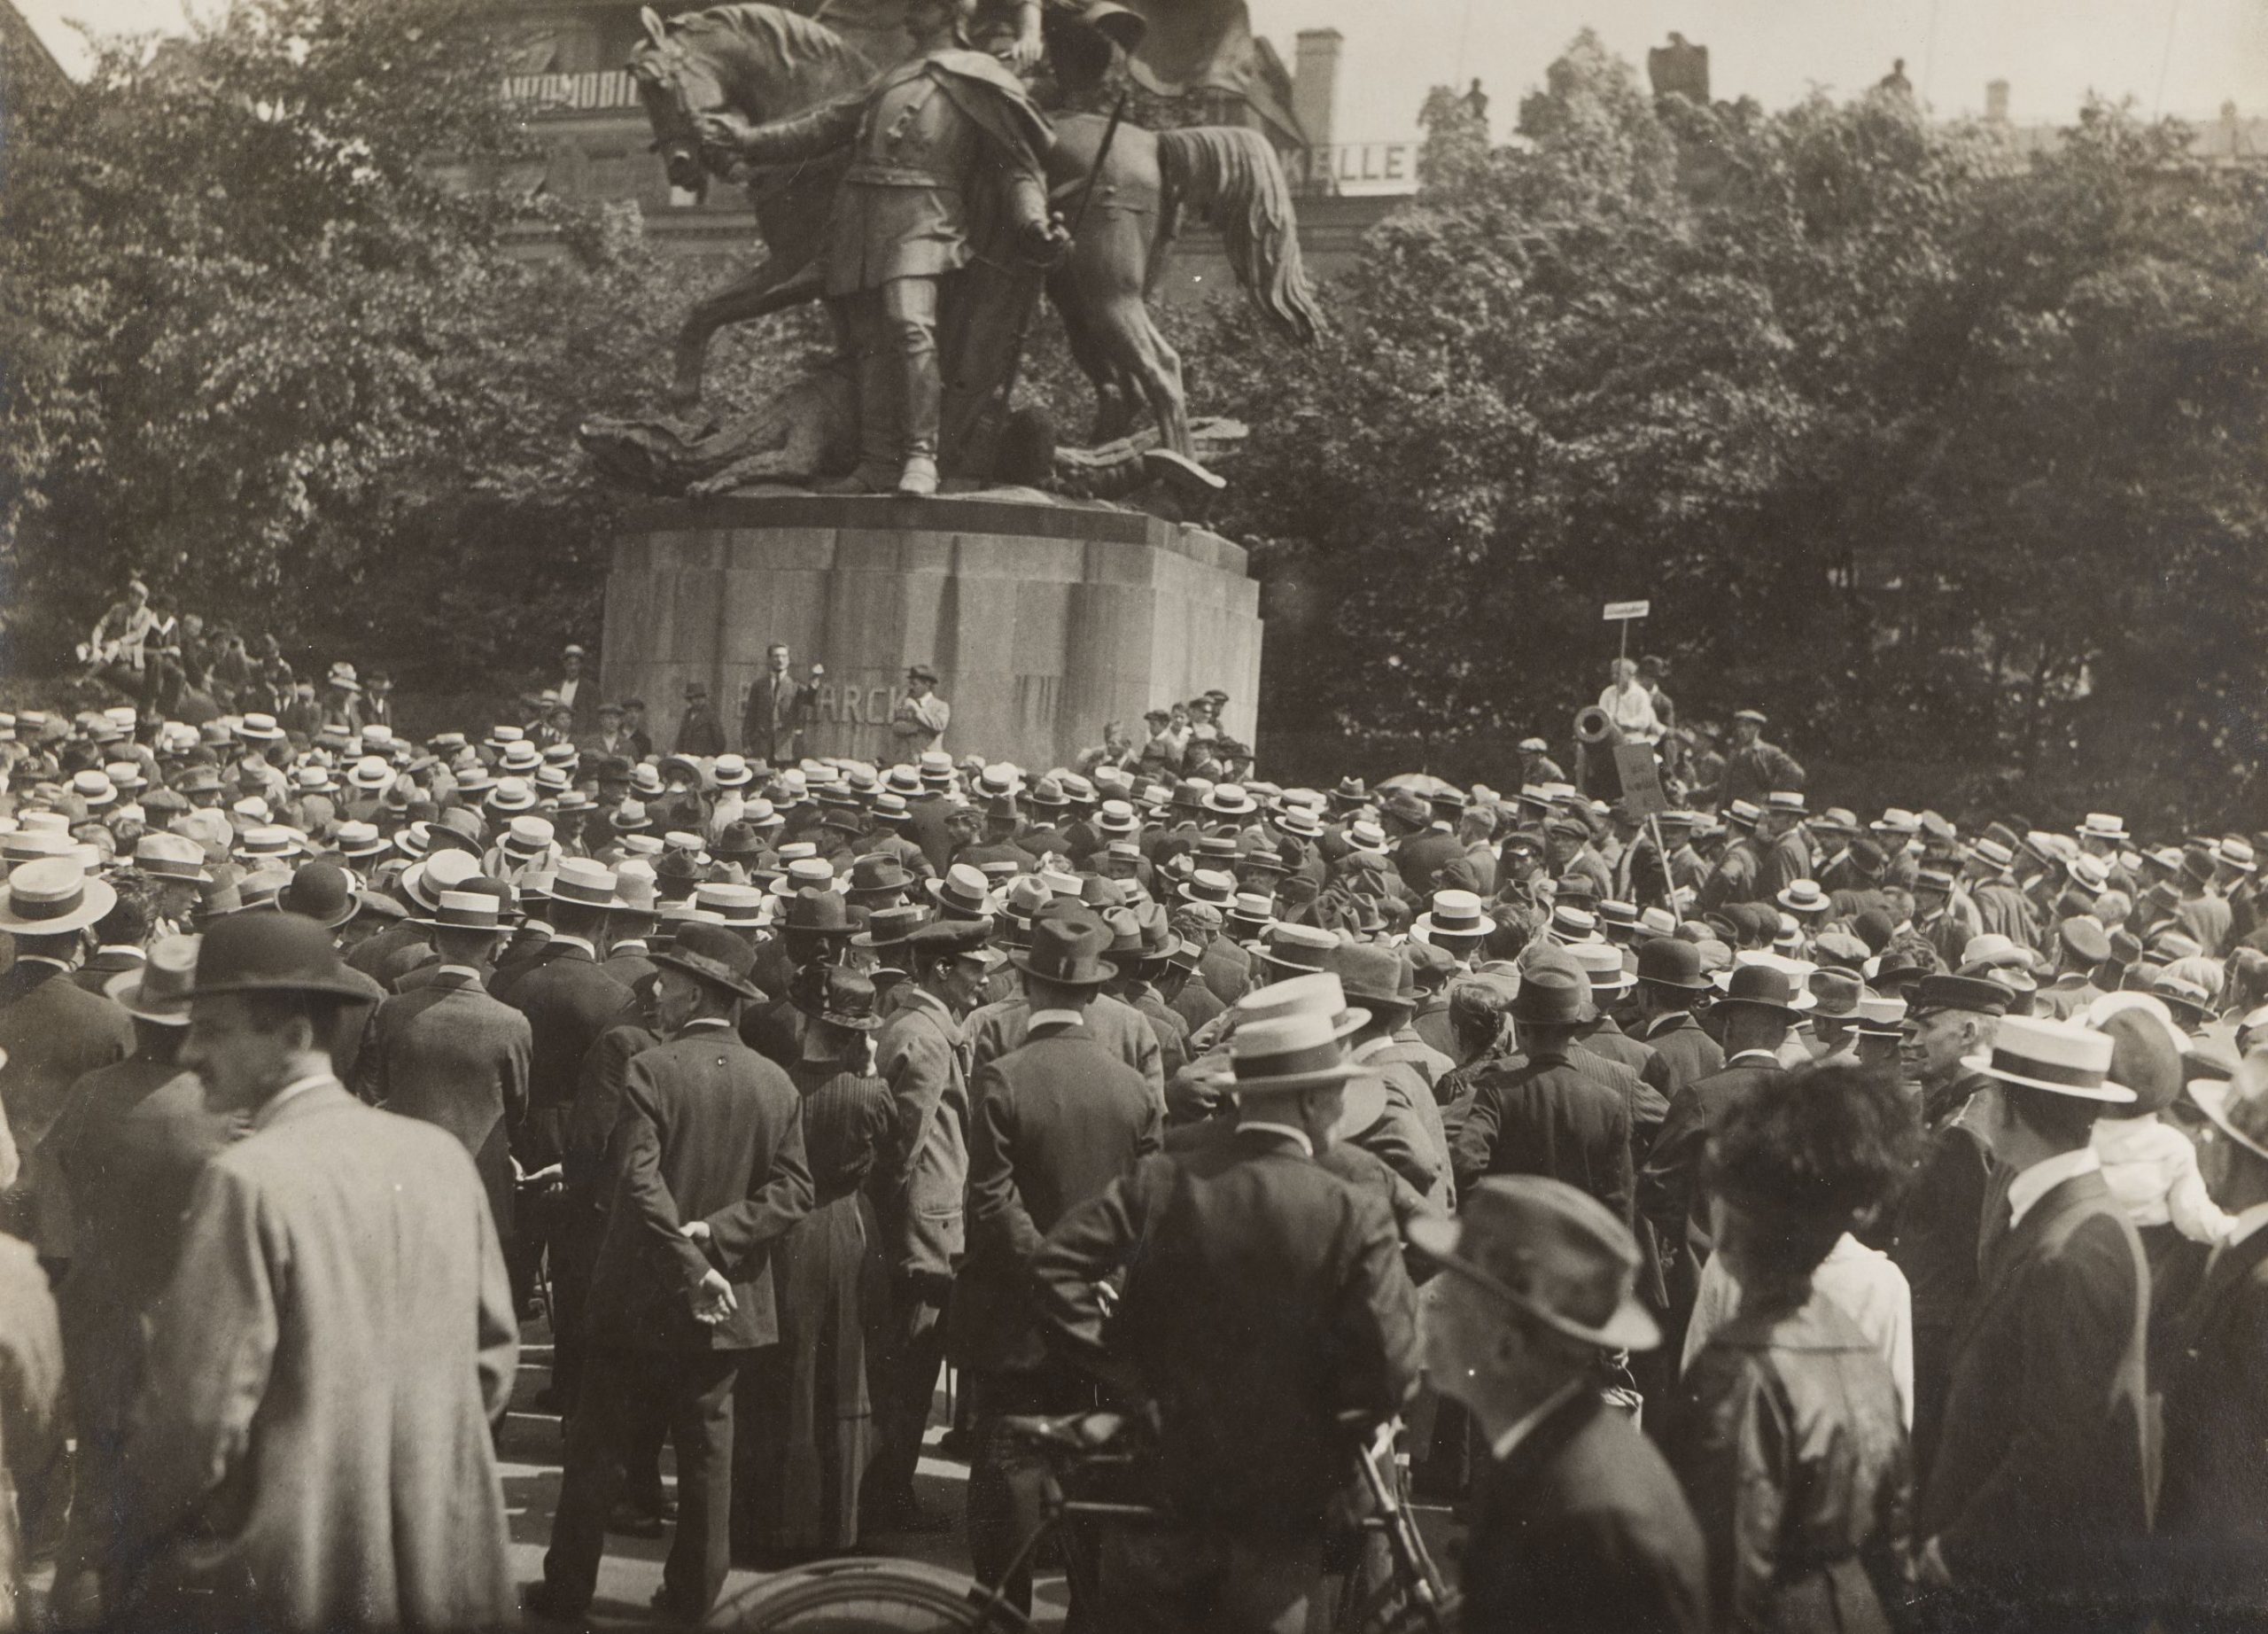 Crowd commemorating Rosa Luxemburg's funeral, Frankfurt 1919